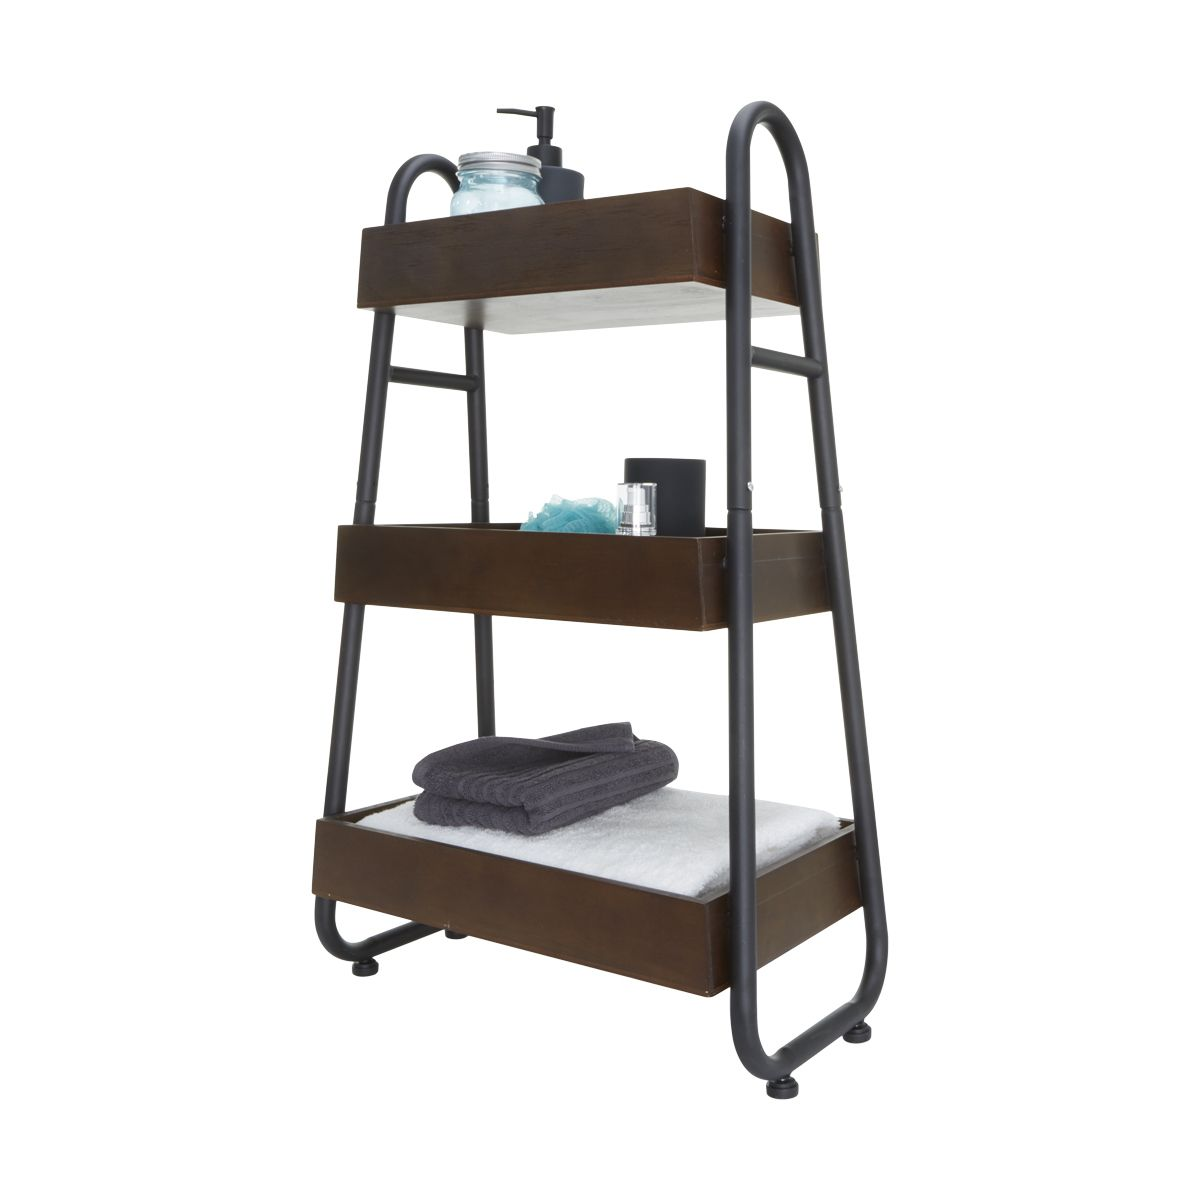 3 Tier Industrial Style Caddy Kmart Industrial Style Wood Decor Cupboard Storage